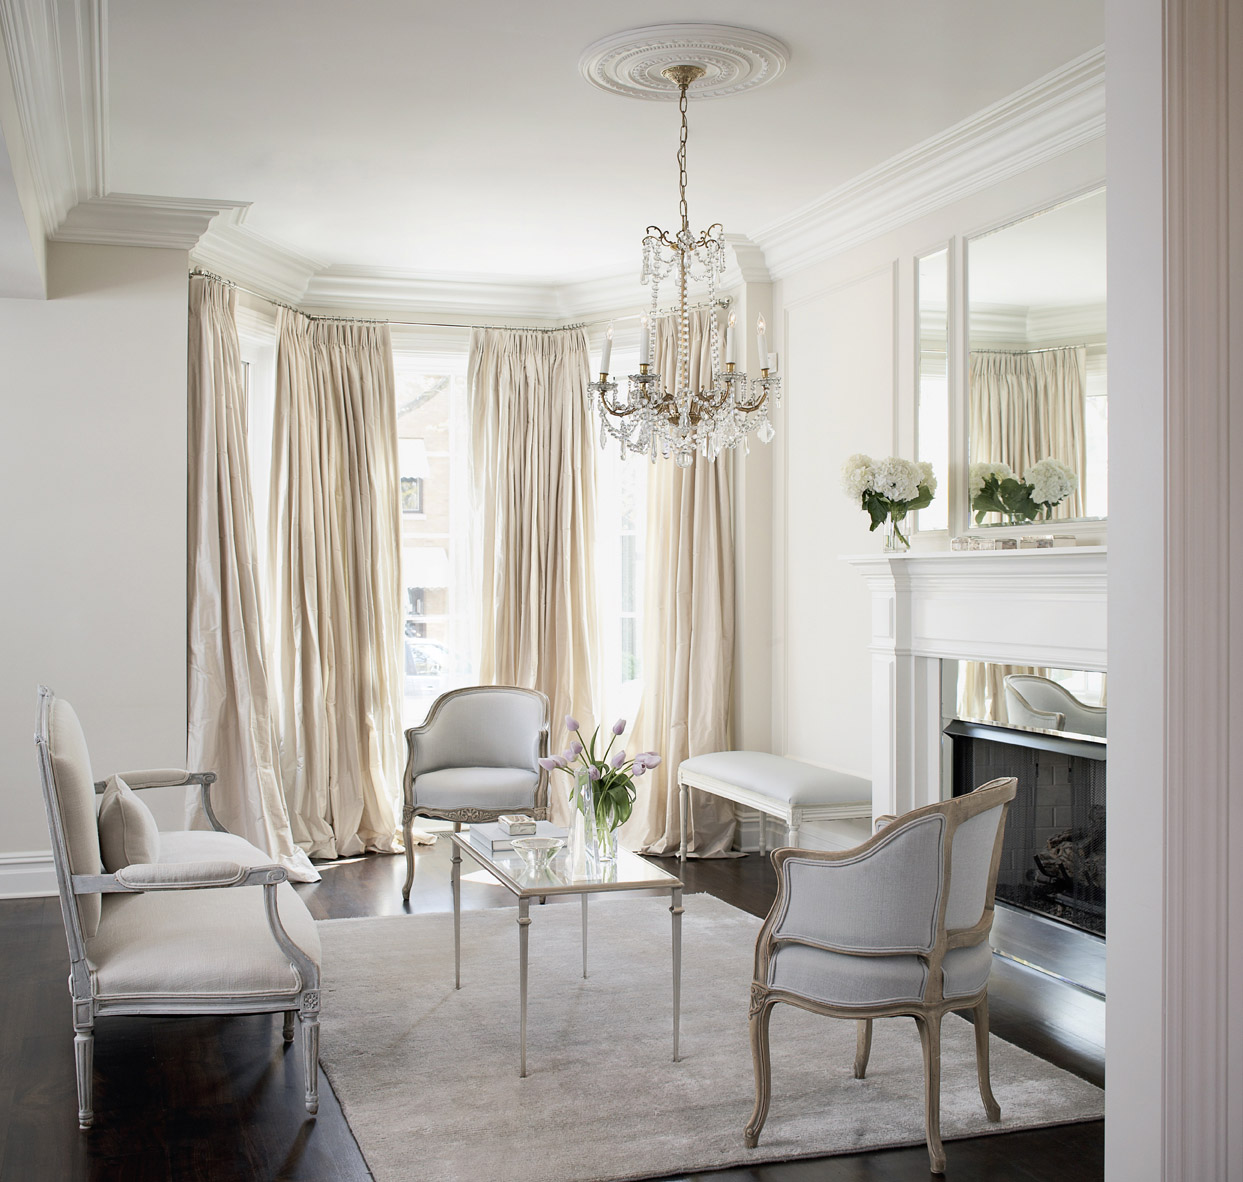 Leo_Designs_Chicago_interior_design_elegant_inspired1.jpg